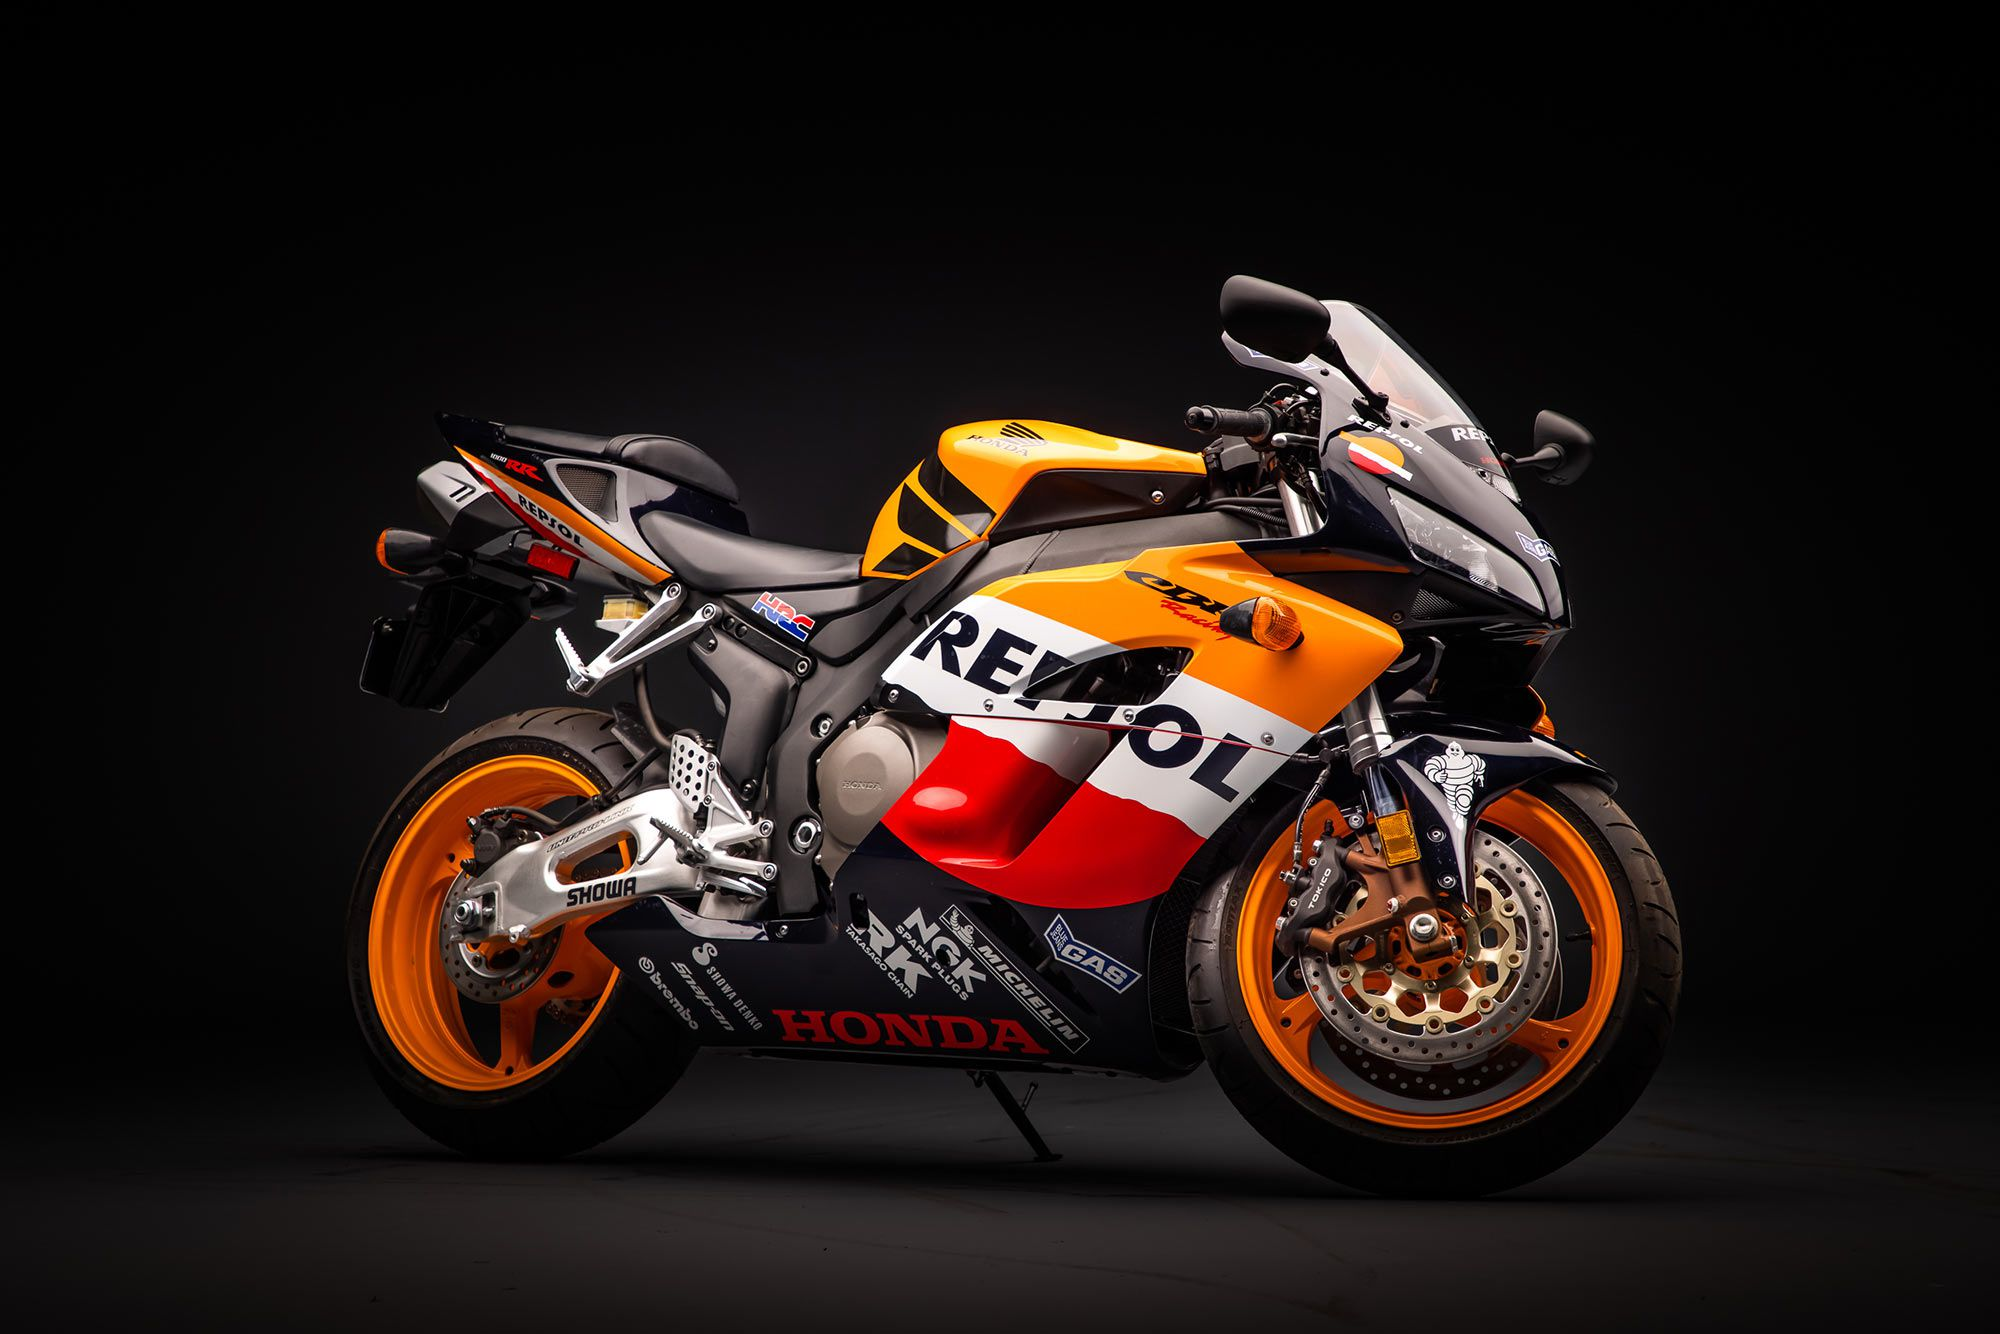 The 2005 CBR1000RR is the first-ever Repsol-edition.